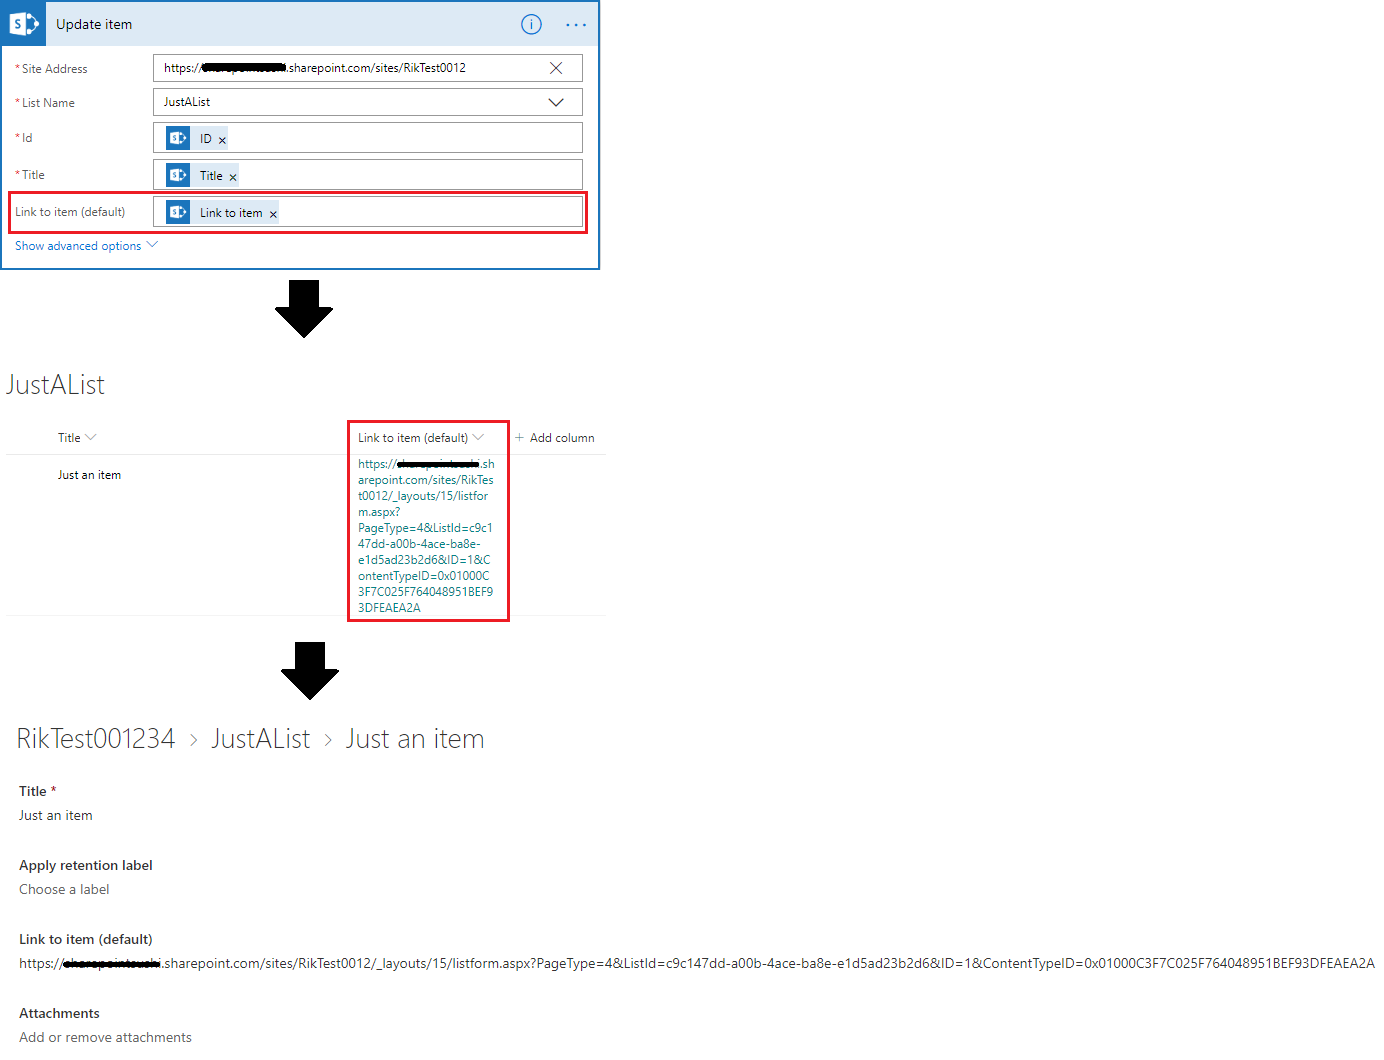 Redirect 'Link to item' URL from-out Microsoft Flow to